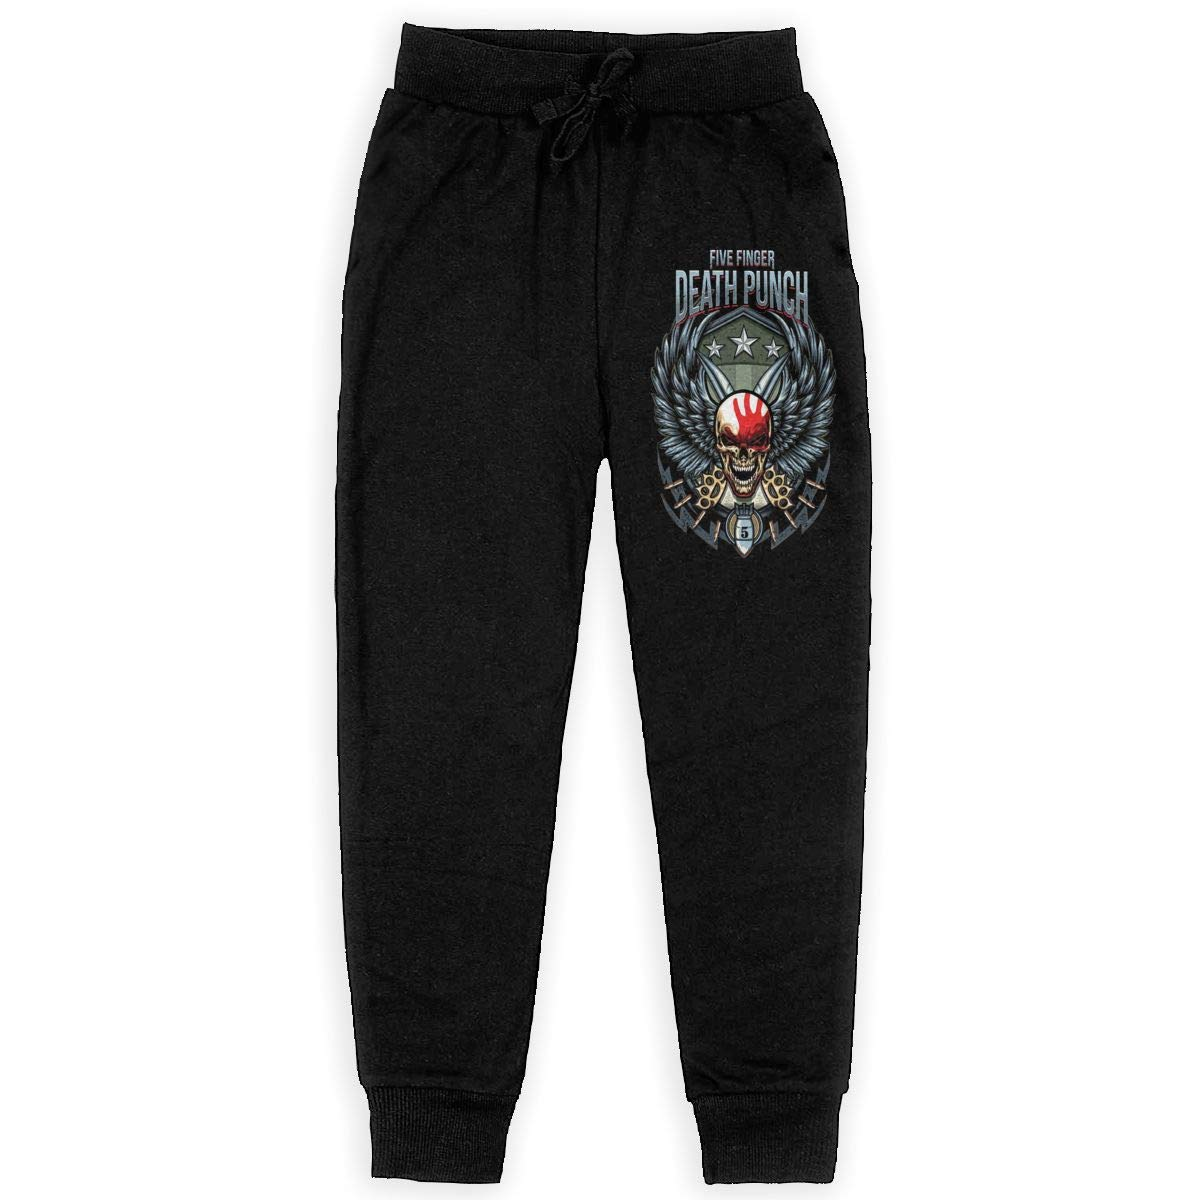 Tangzhikai Unisex Teens Five Finger Death Punch Fashionable Music Band Fans Daily Sweatpants for Boys Gift with Pockets